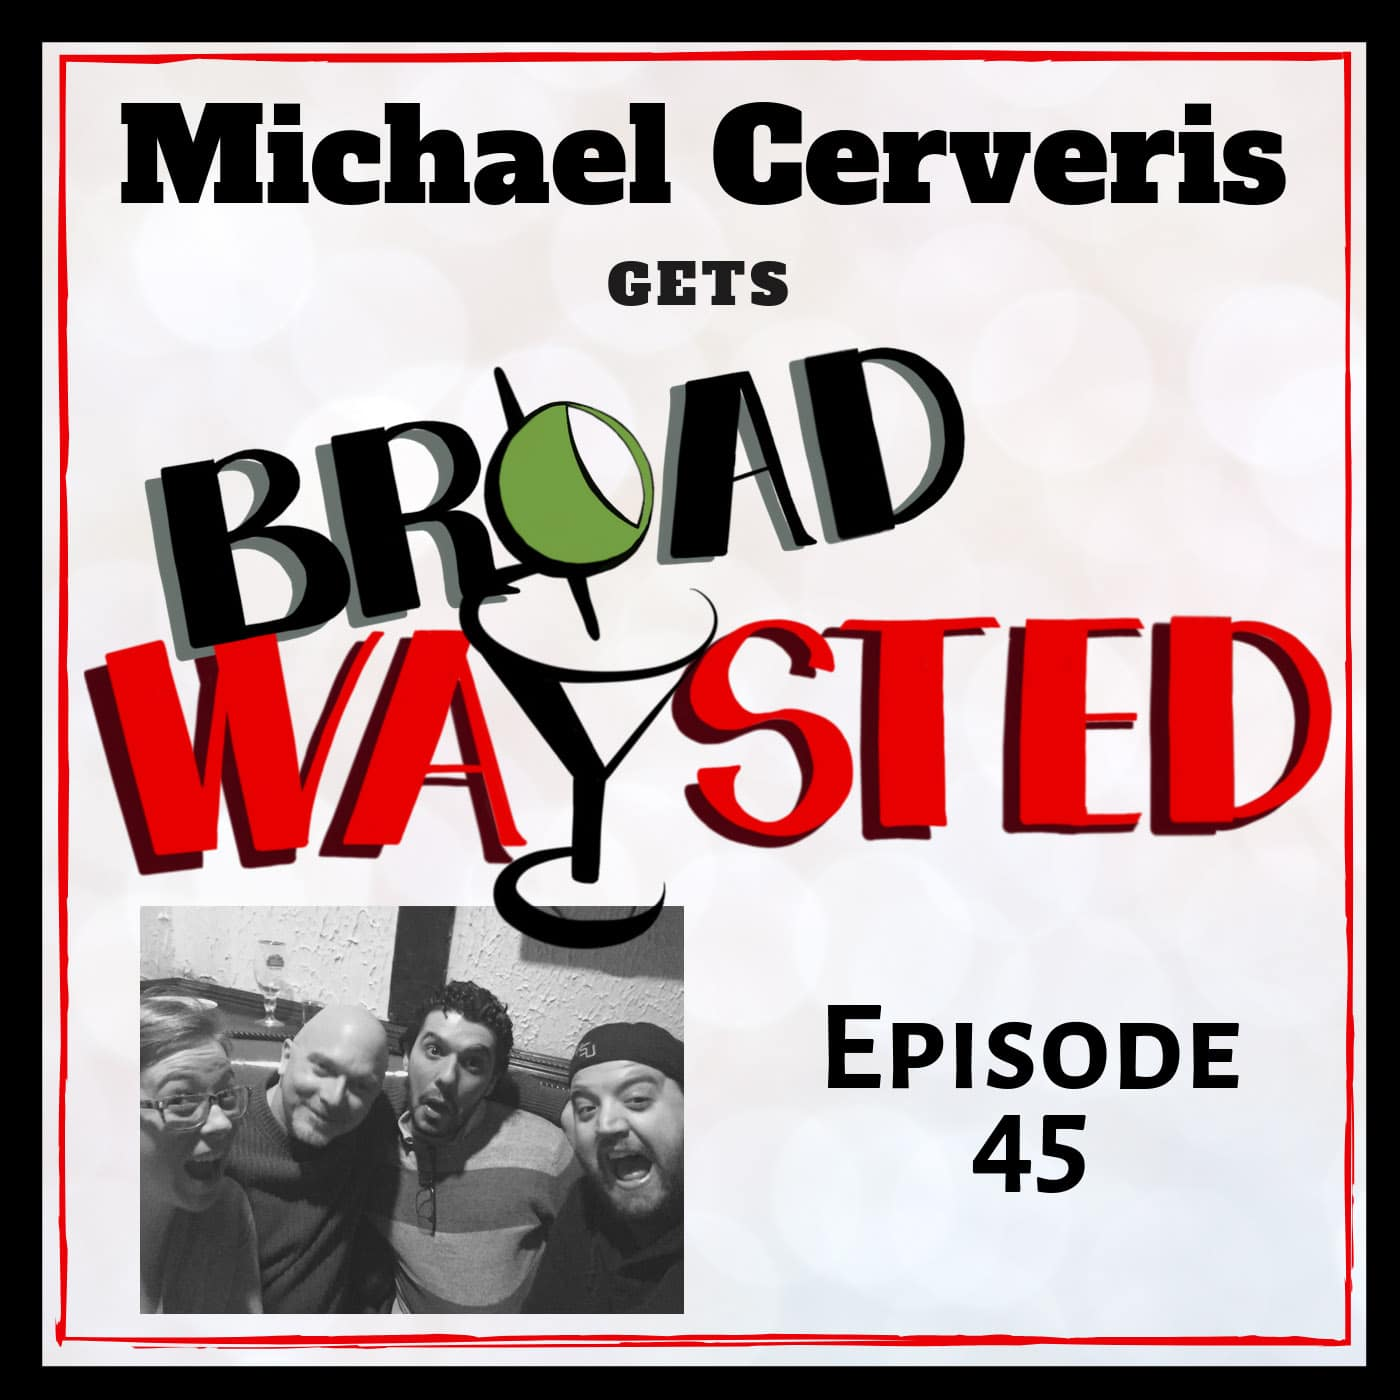 Broadwaysted Ep 45 Michael Cerveris